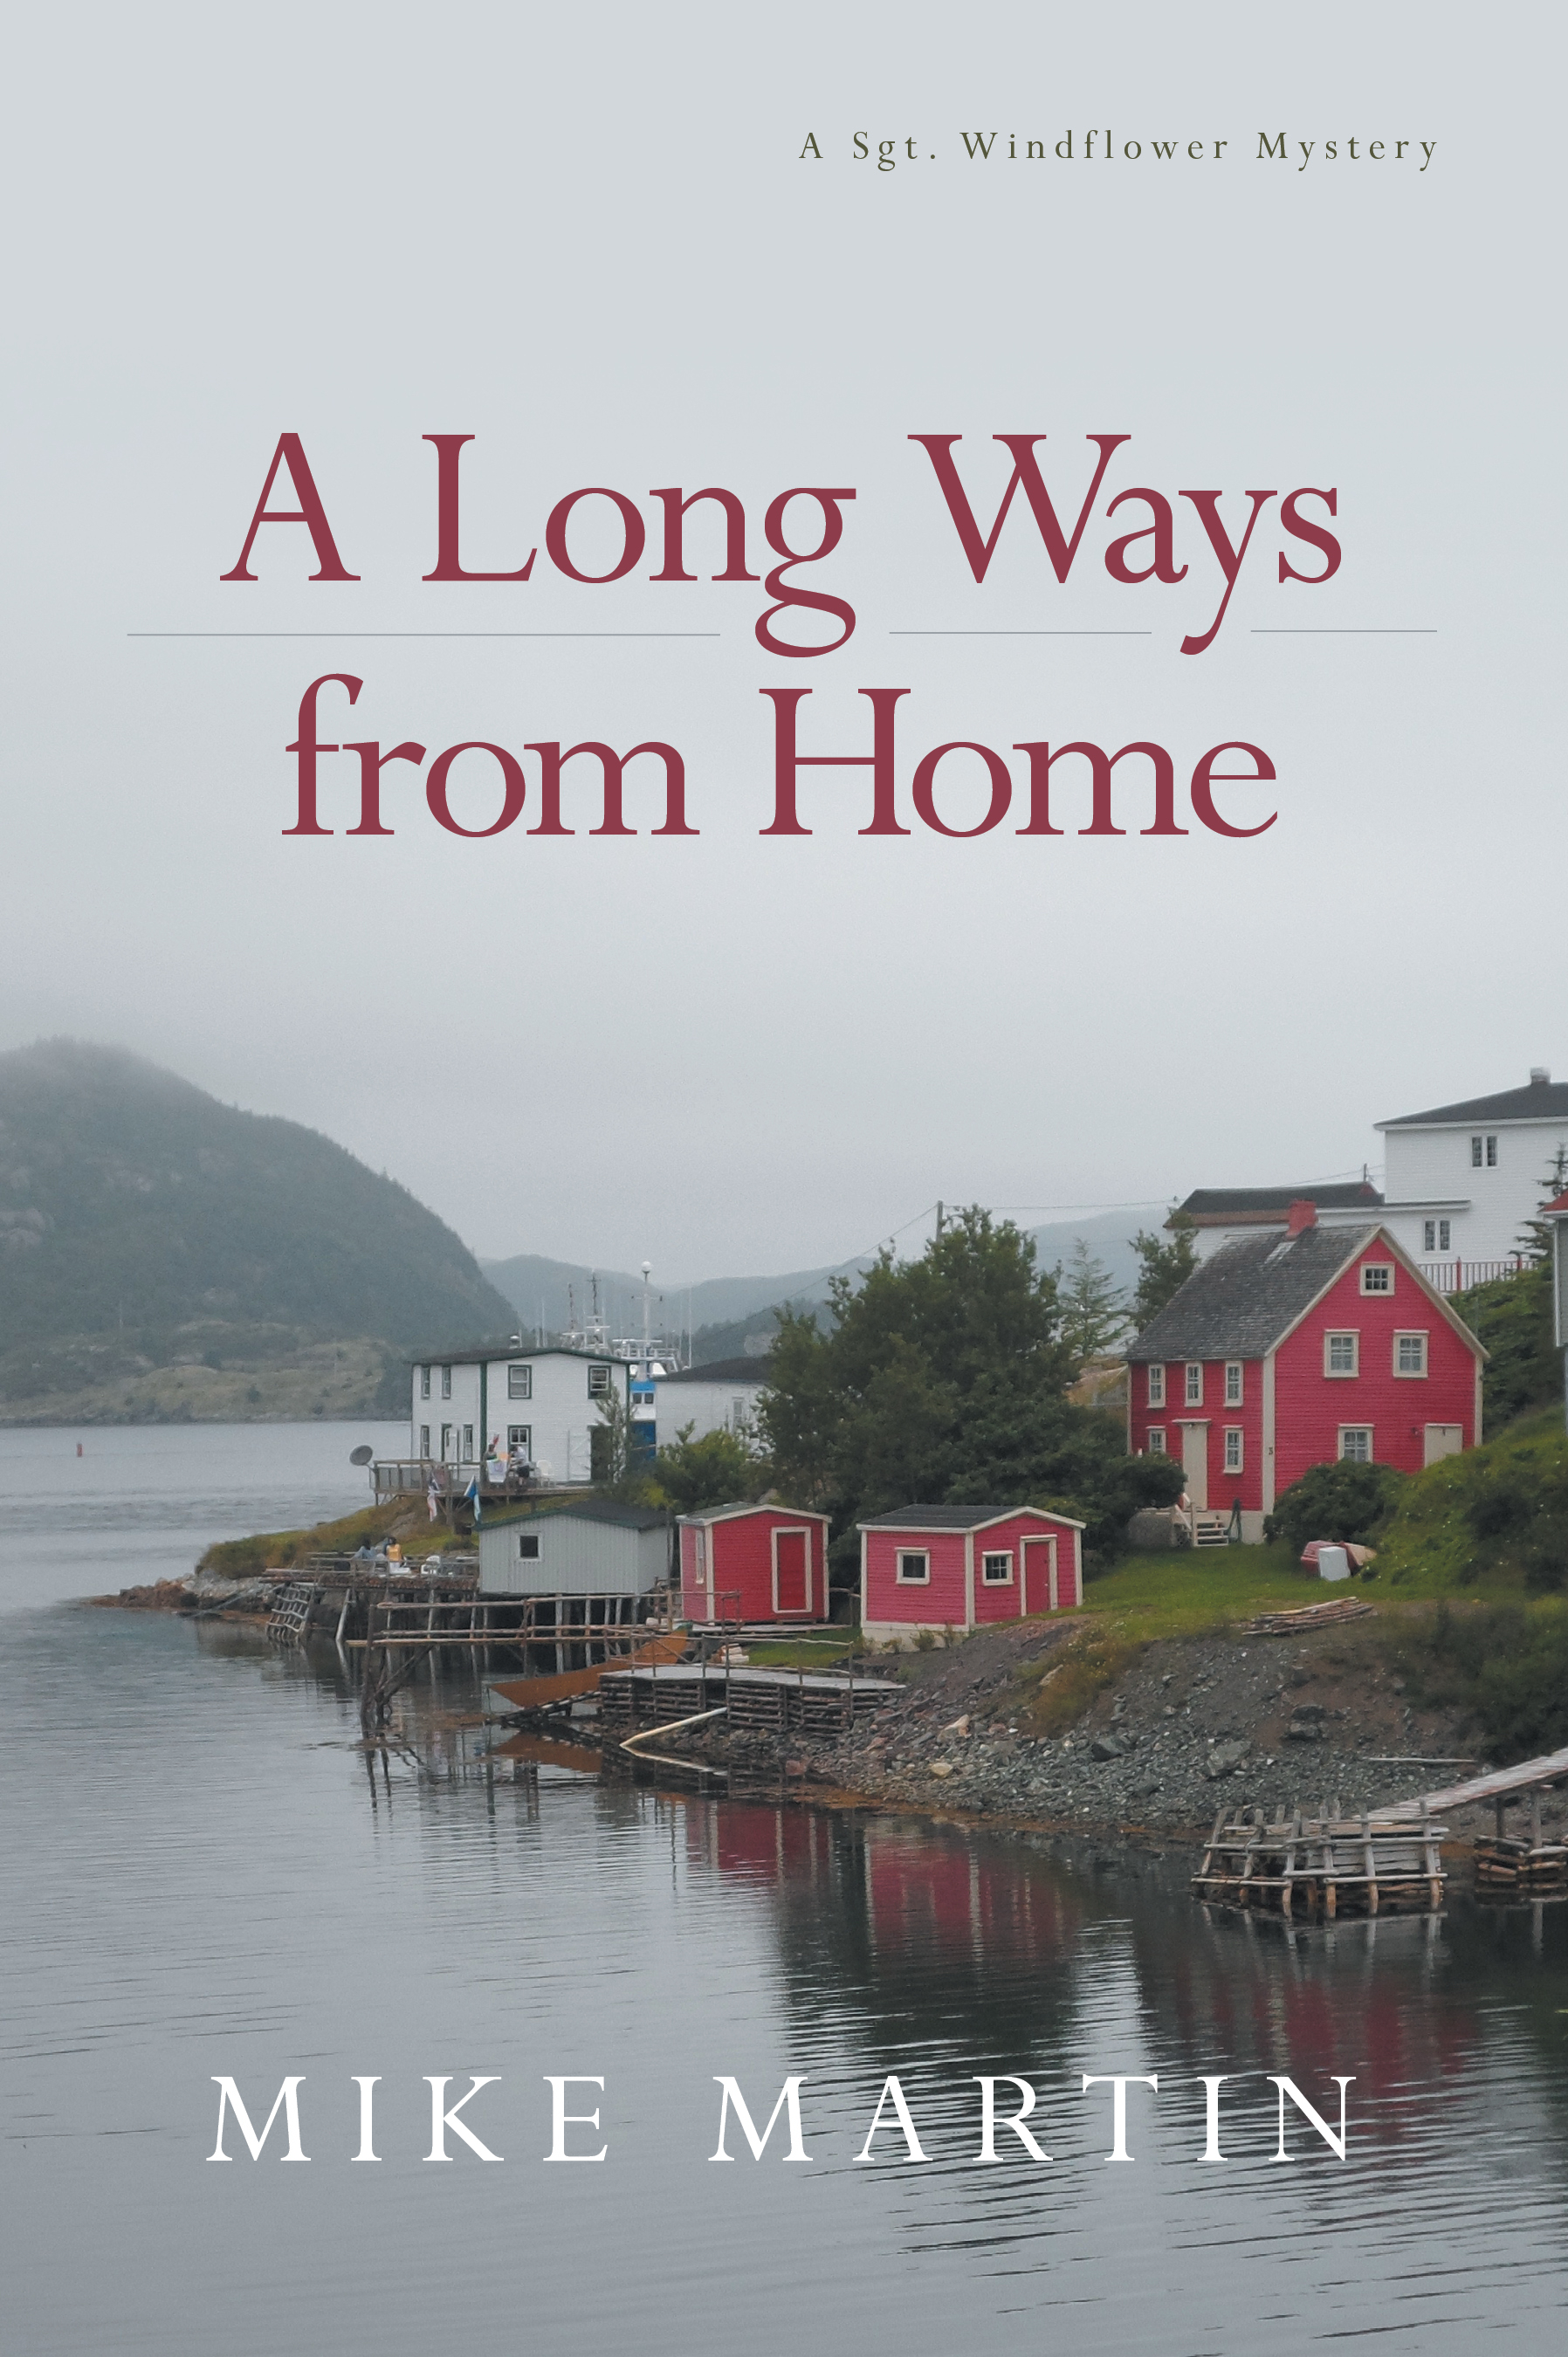 a-long-ways-from-home-cover1.jpg